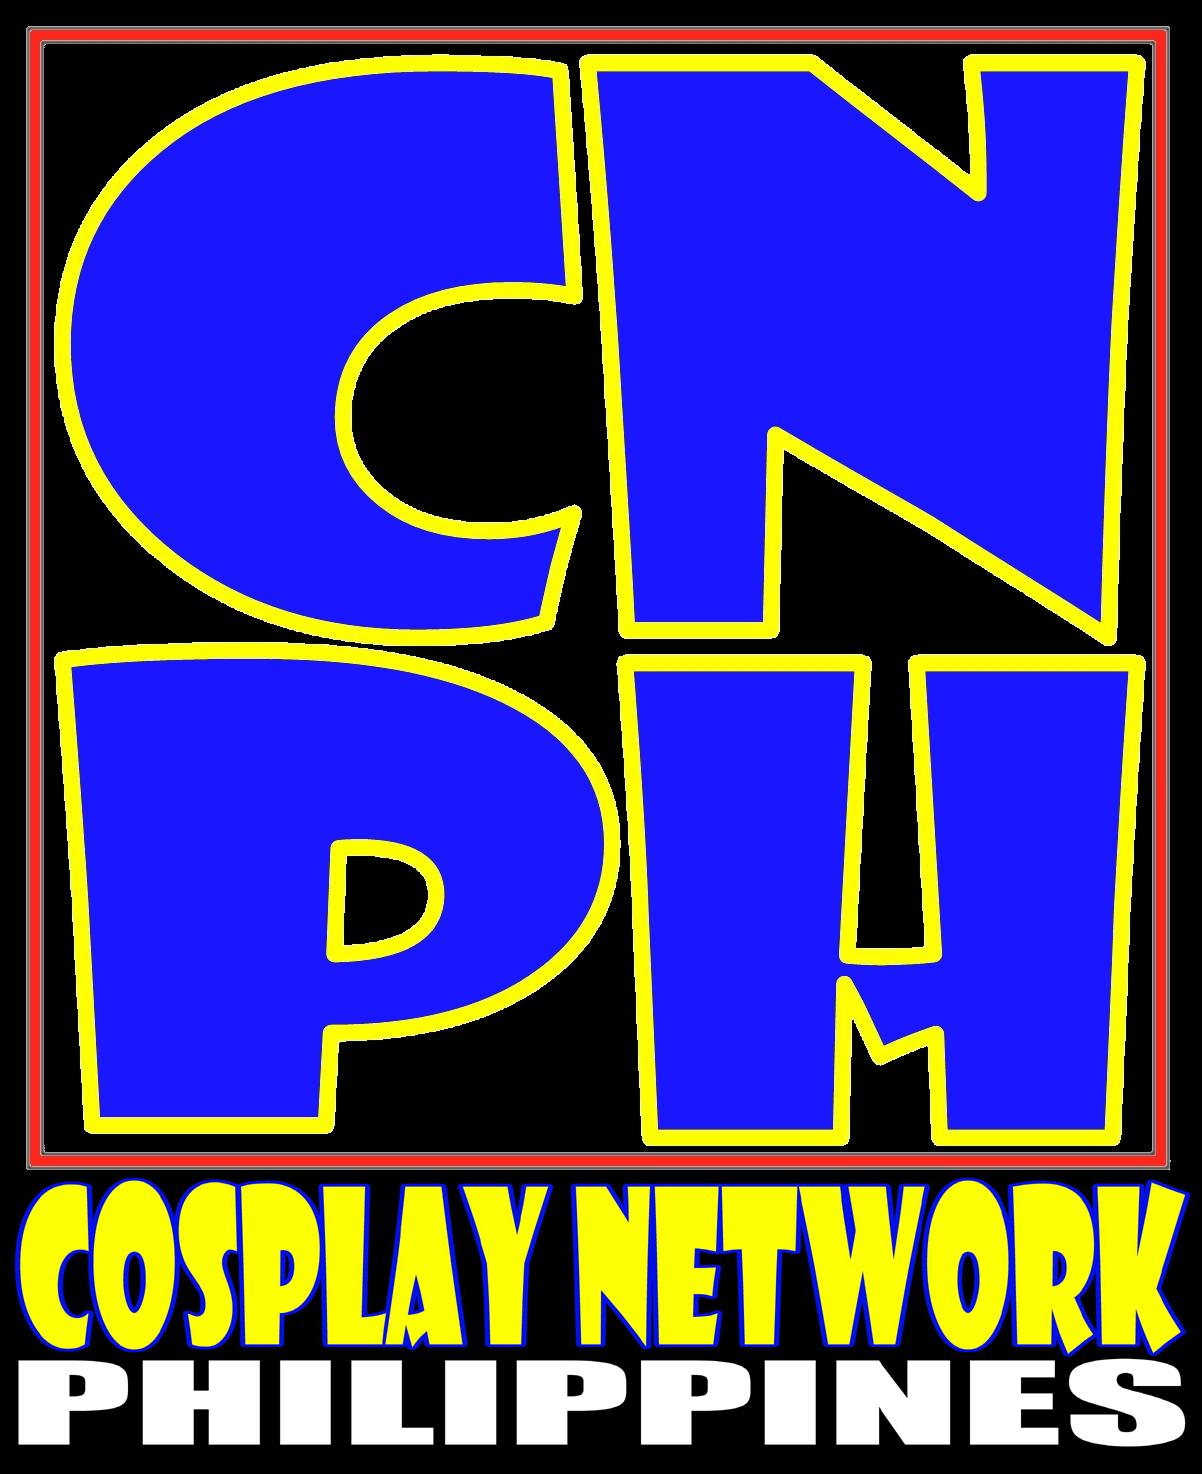 cosplay network